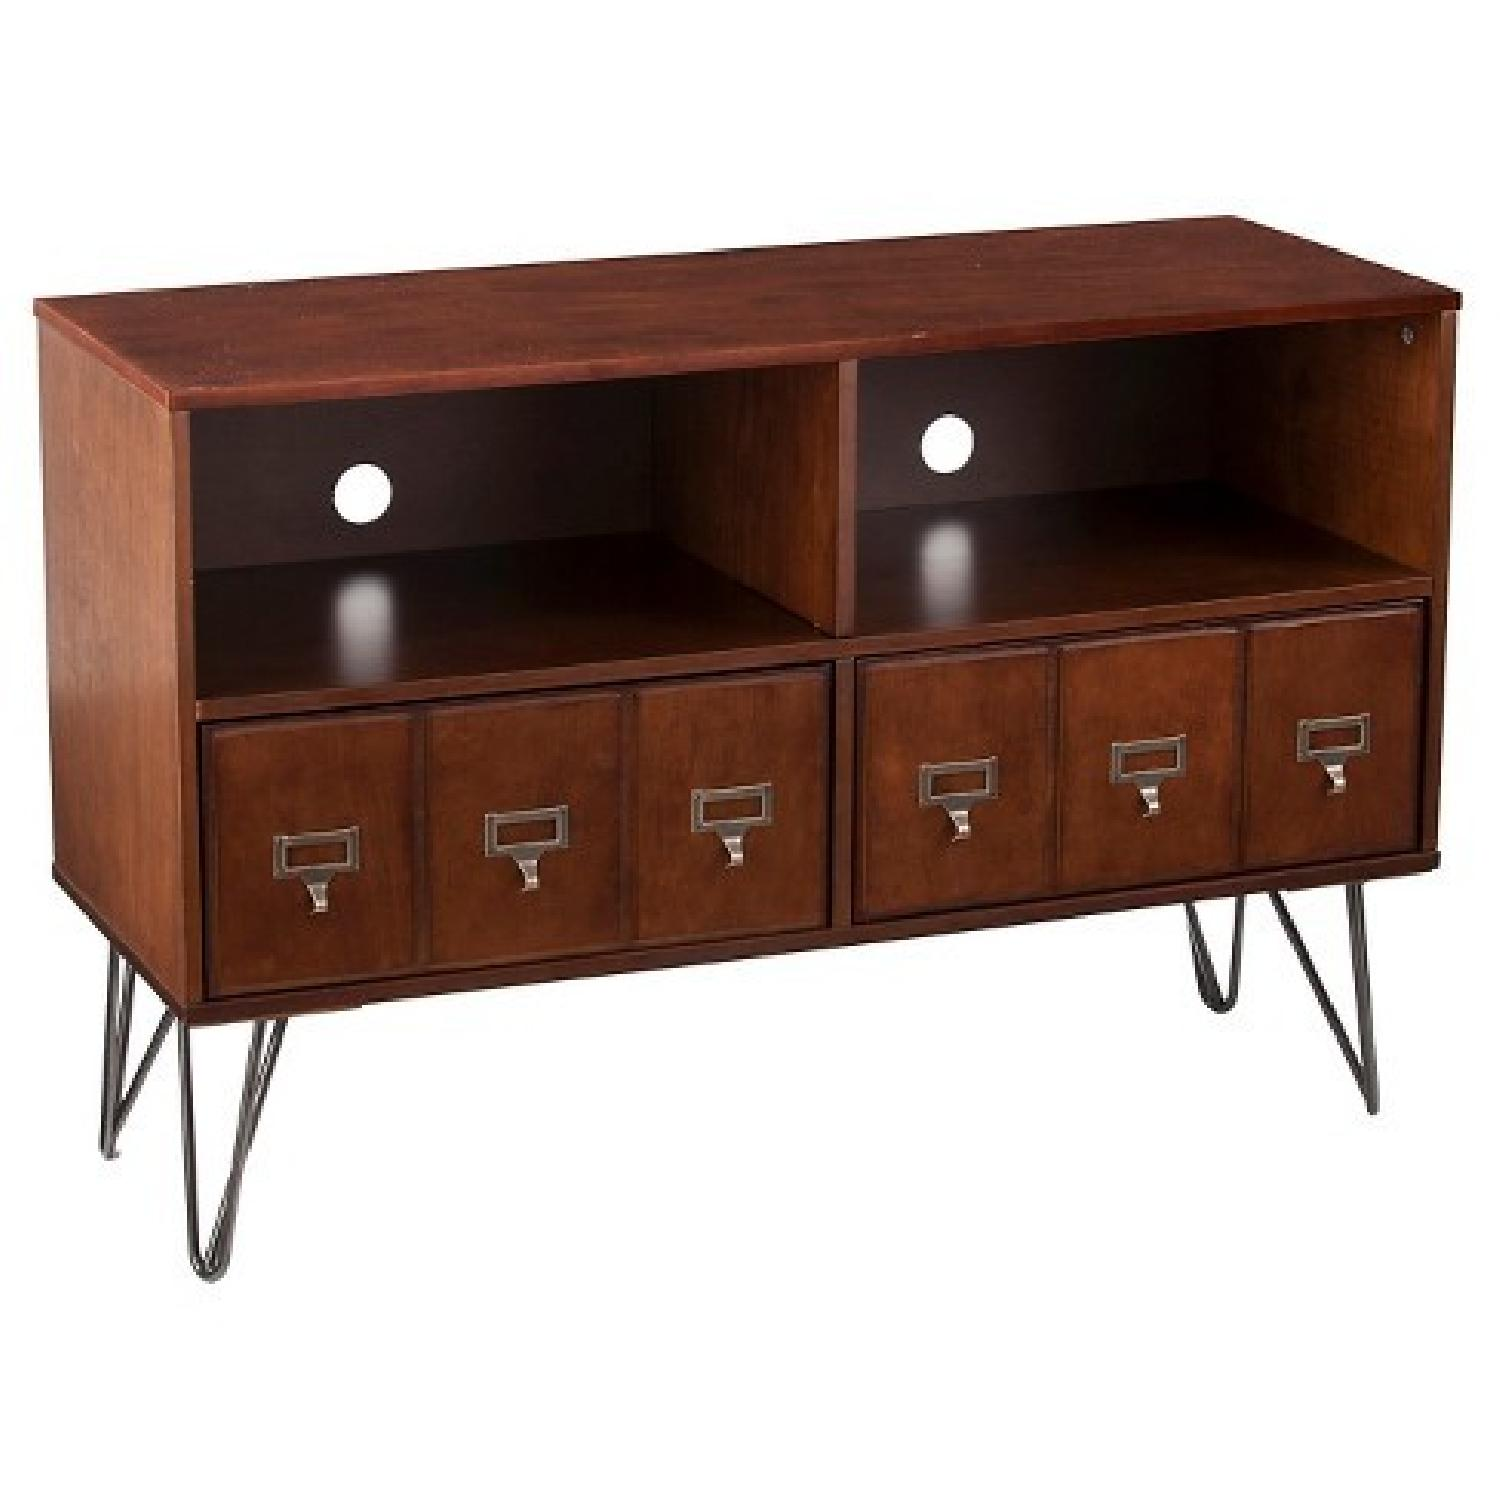 Aiden Lane TV Stand/Media Console